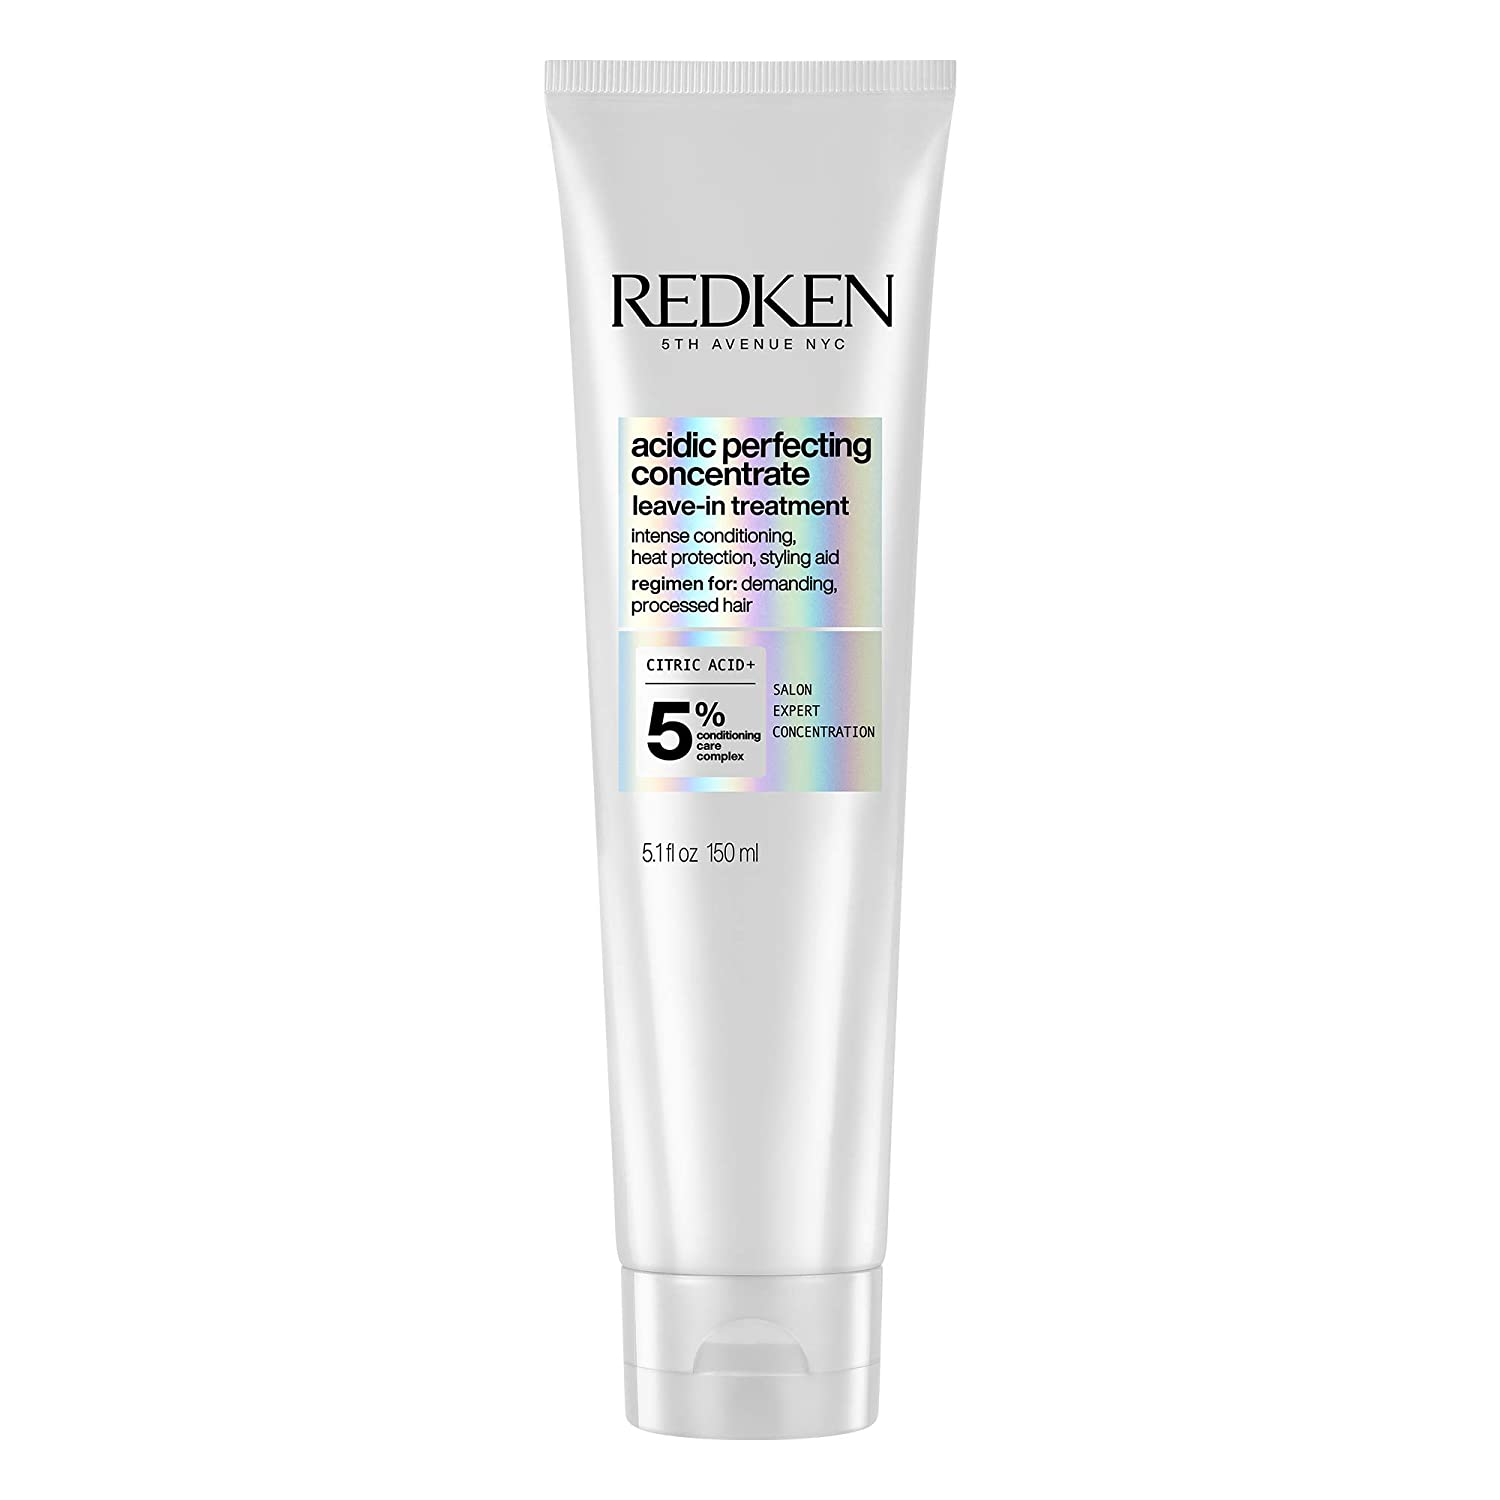 Redken Leave In Conditioner for Damaged Hair Repair | Acidic Perfecting Concentrate | For All Hair Types | Leave In Treatment